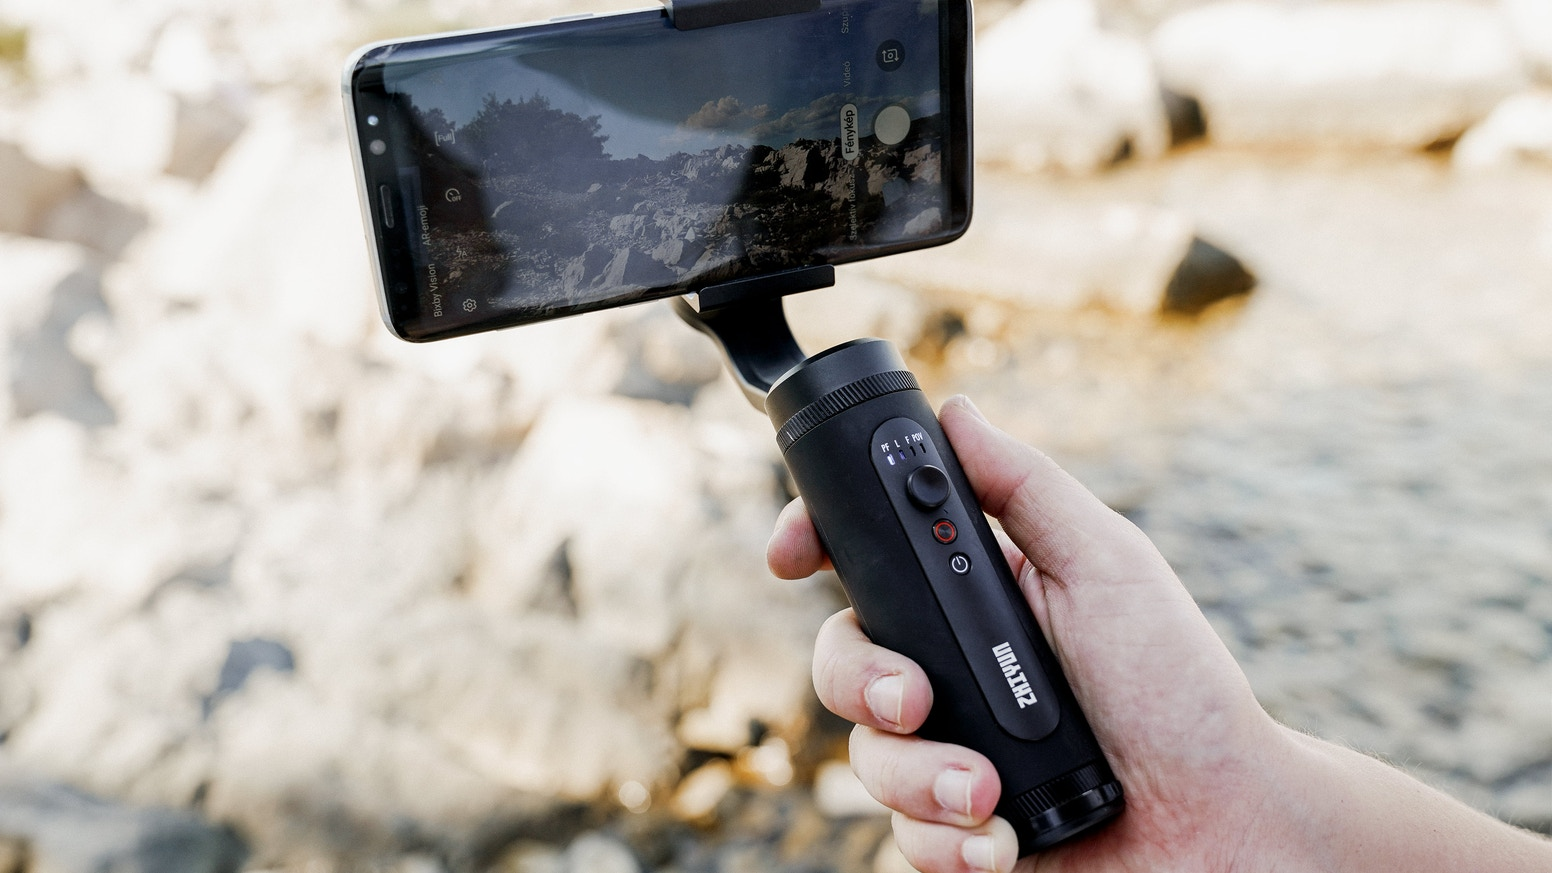 SMOOTH-Q2 is the small size mobile phone gimbal ever created by ZHIYUN, one that is born to empower everyone to be a filmmaker.